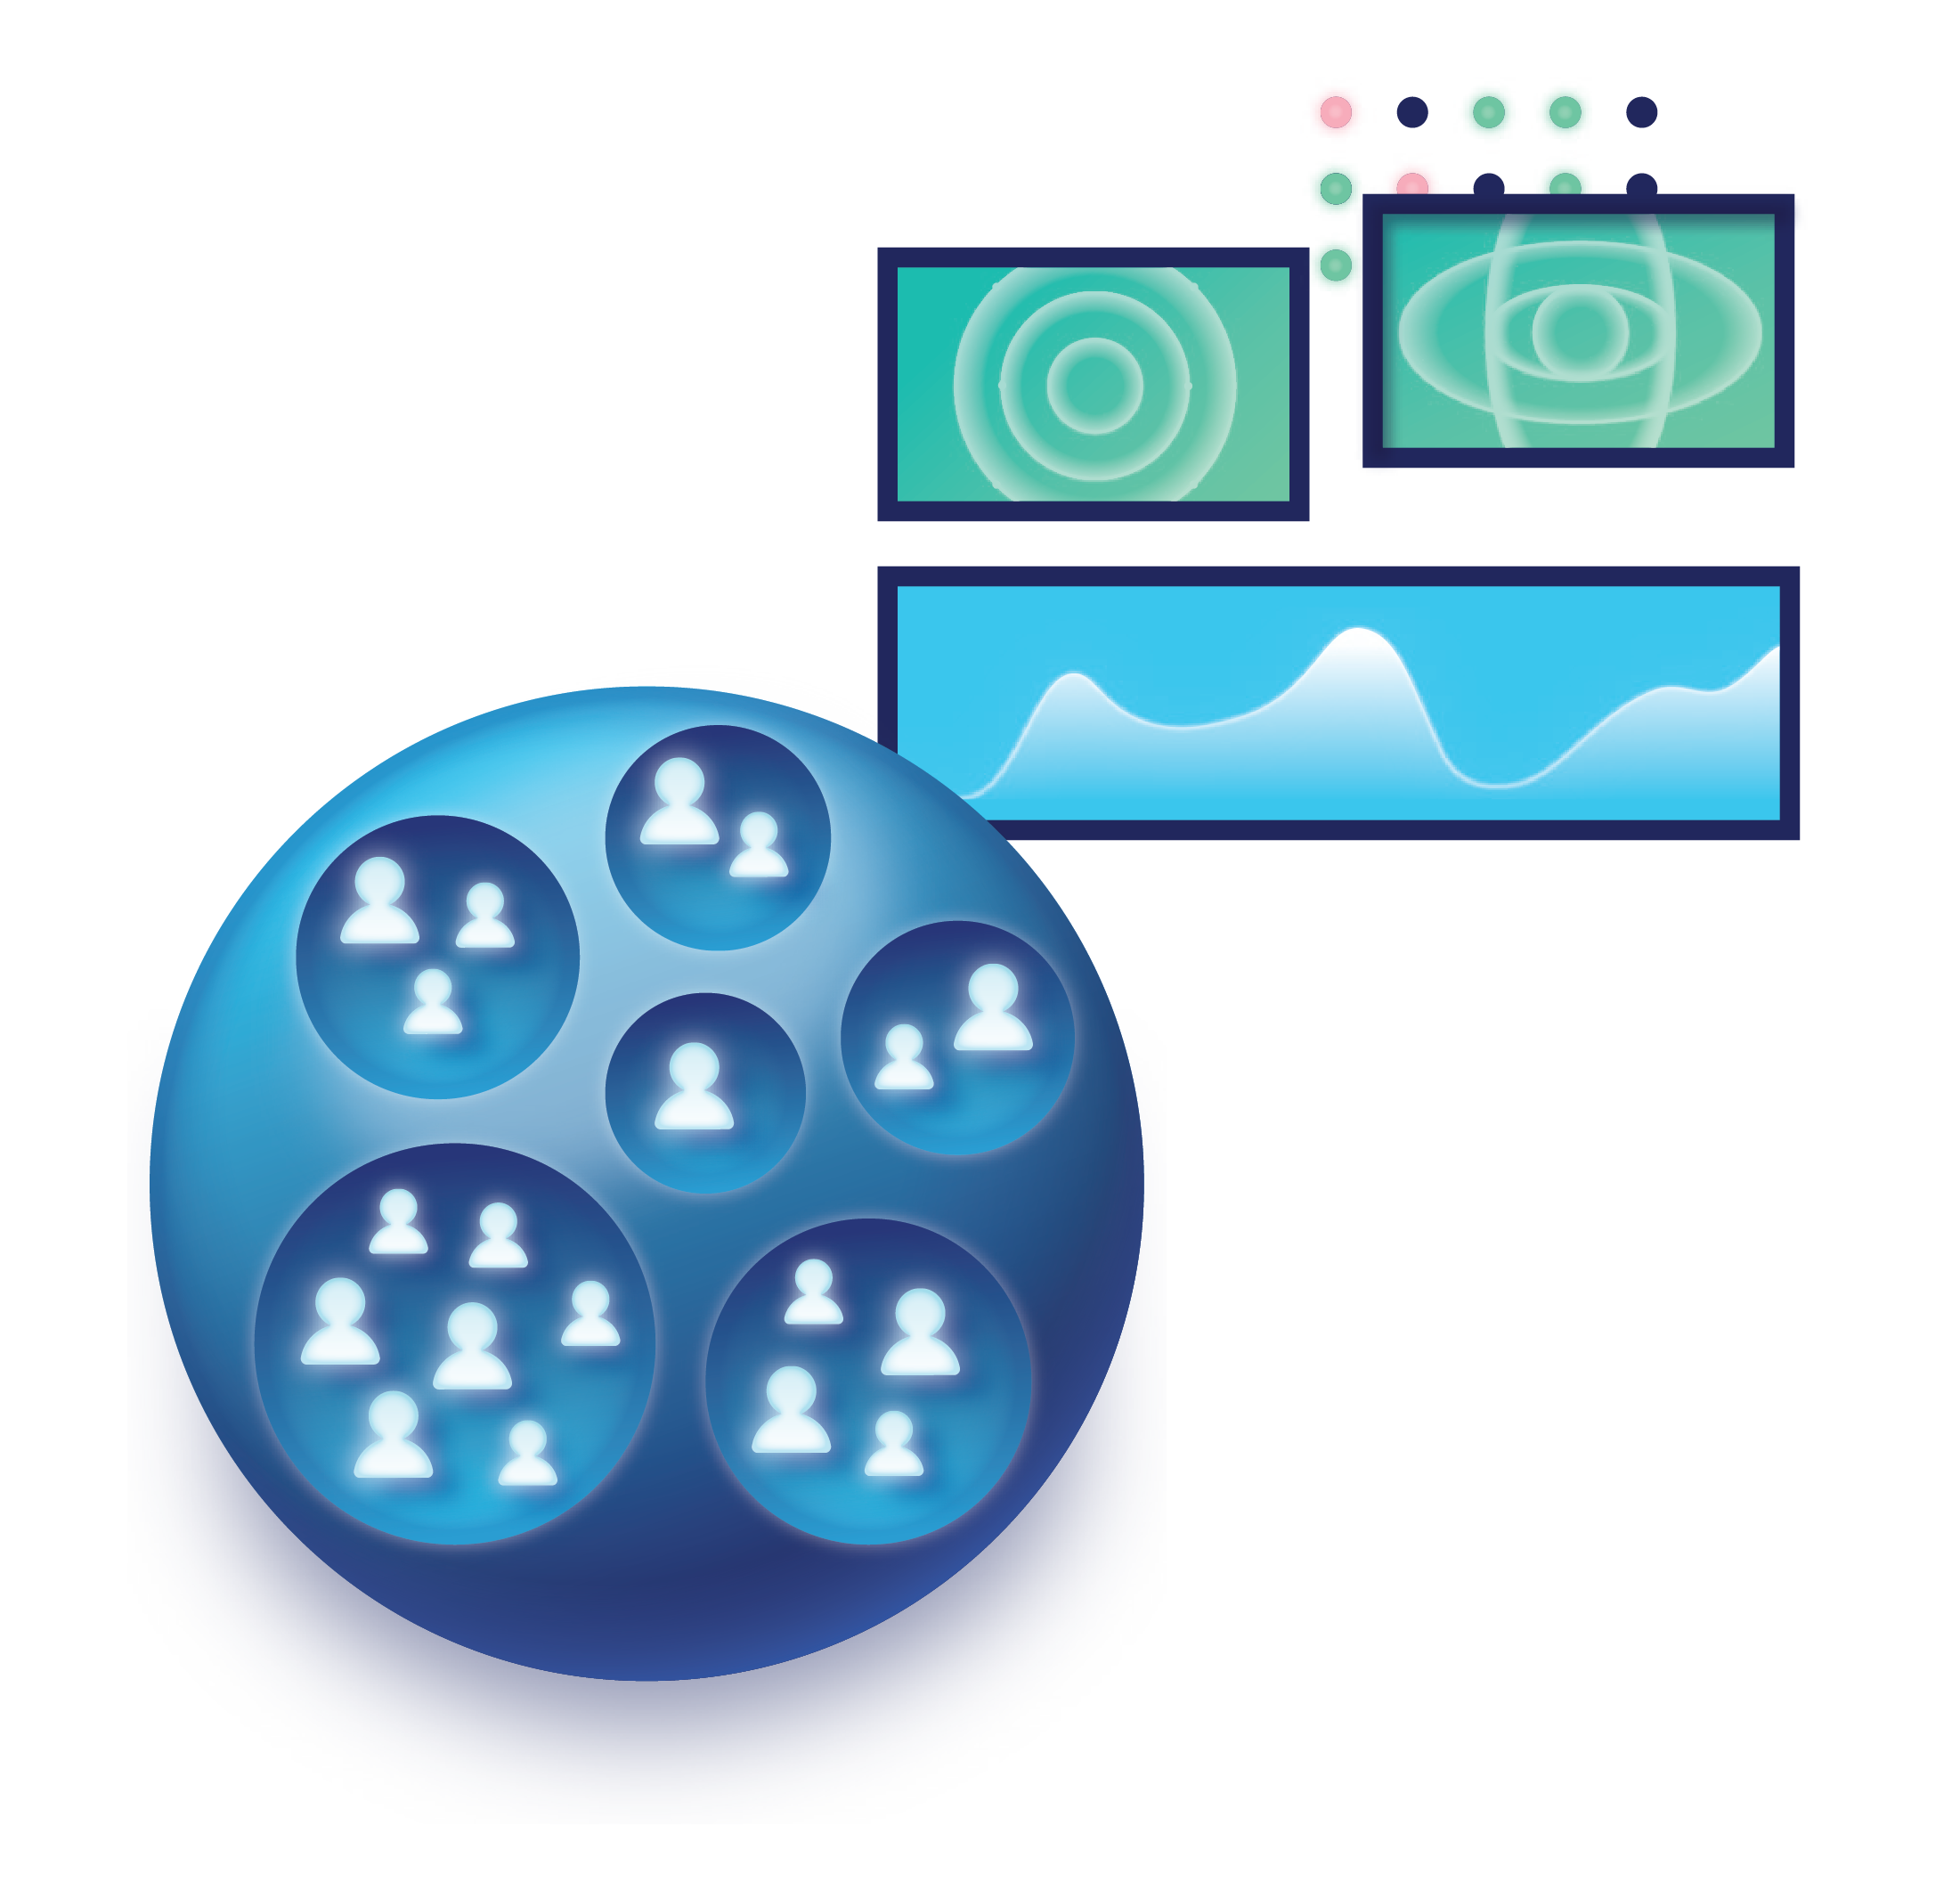 user groups and dashboard icons